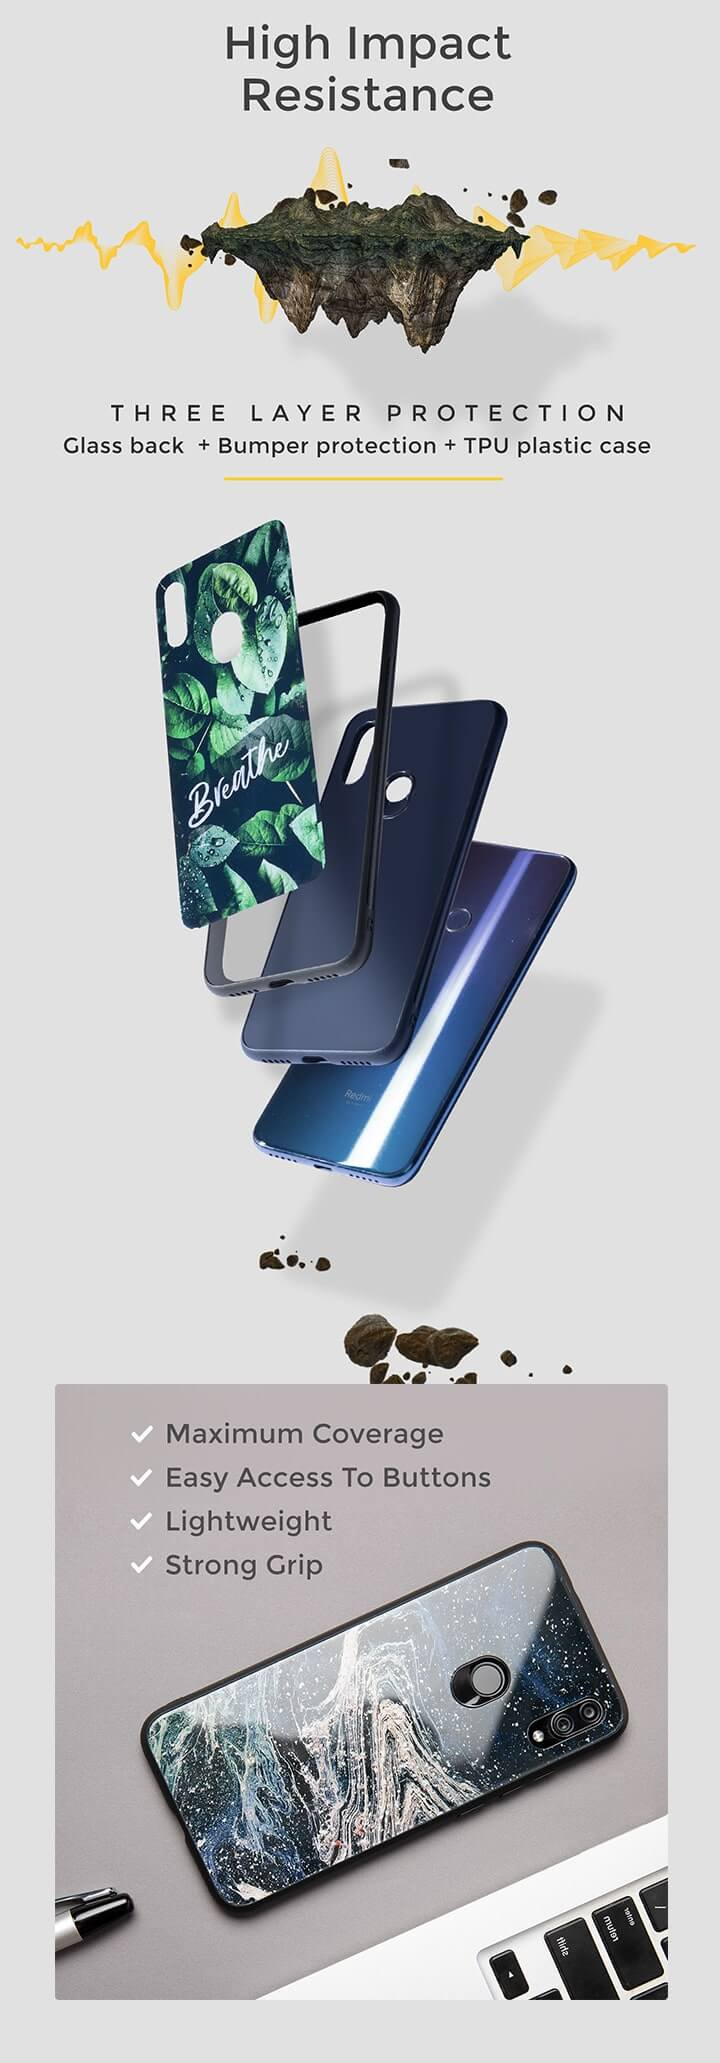 Thor Hammer OnePlus 7 Pro Glass Mobile Cover (AVL) Description Image Mobile Site 1@Bewakoof.com